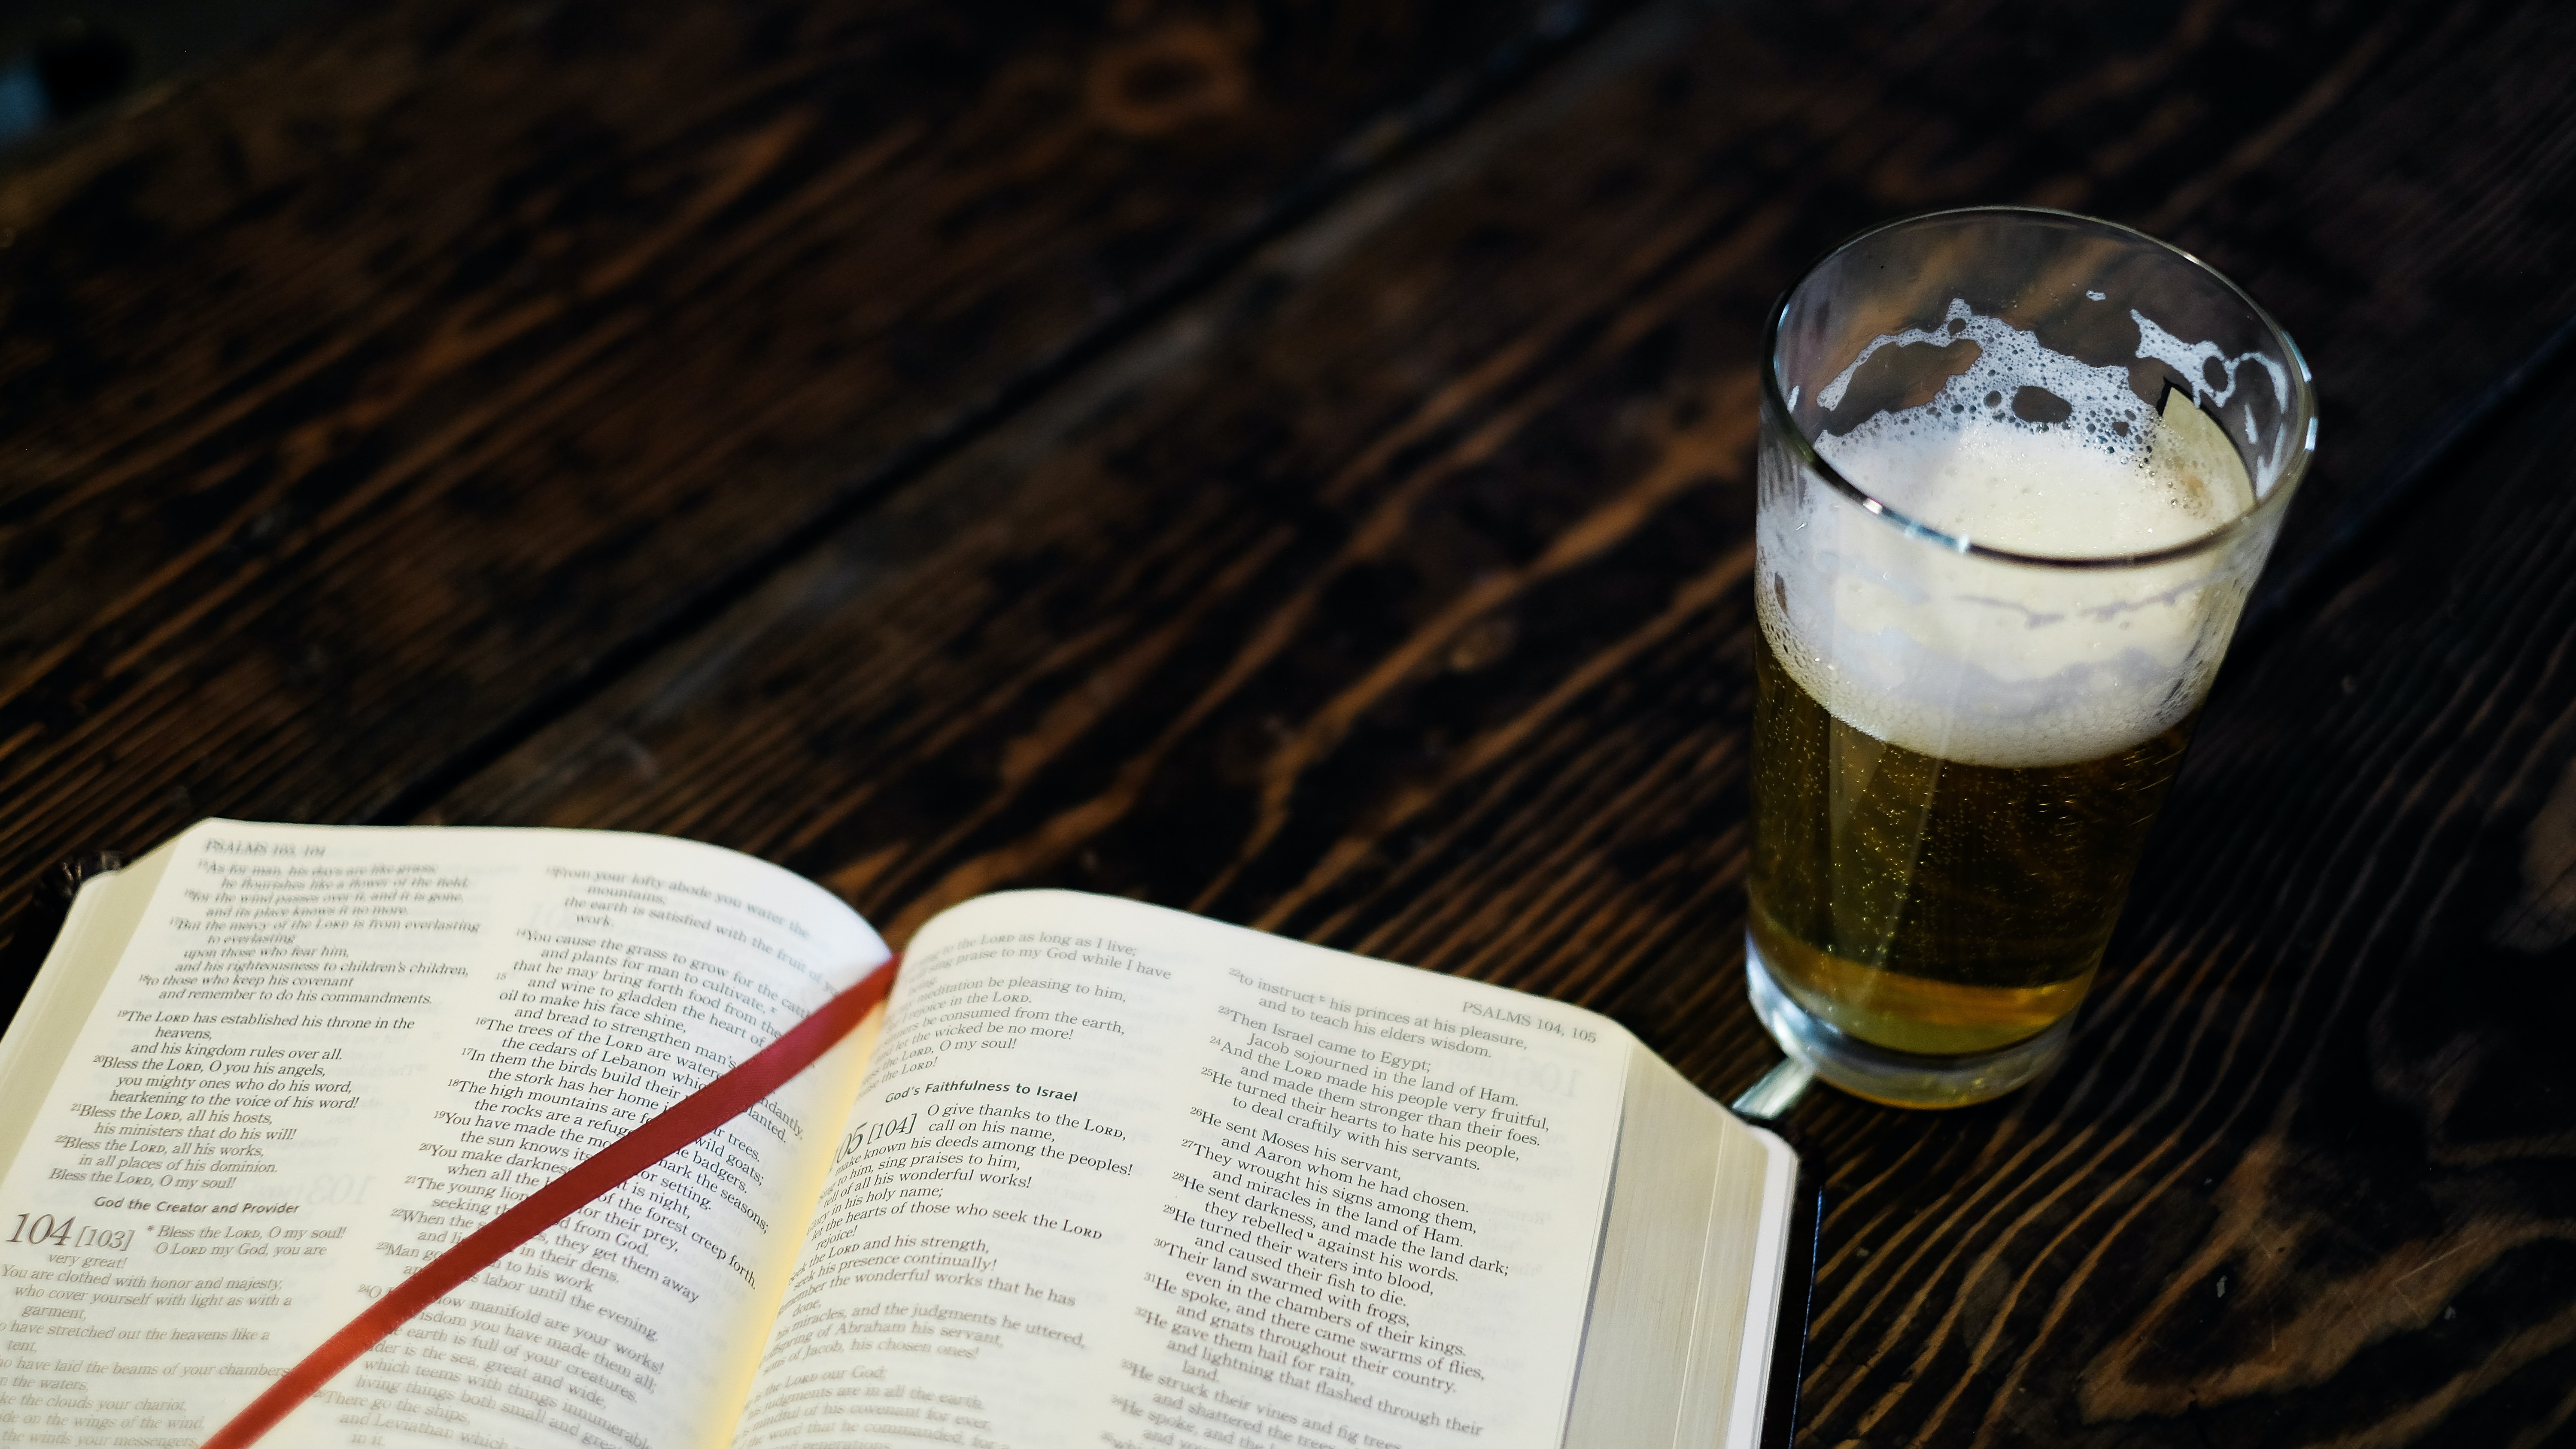 A large hardcover book next to a glass of beer.